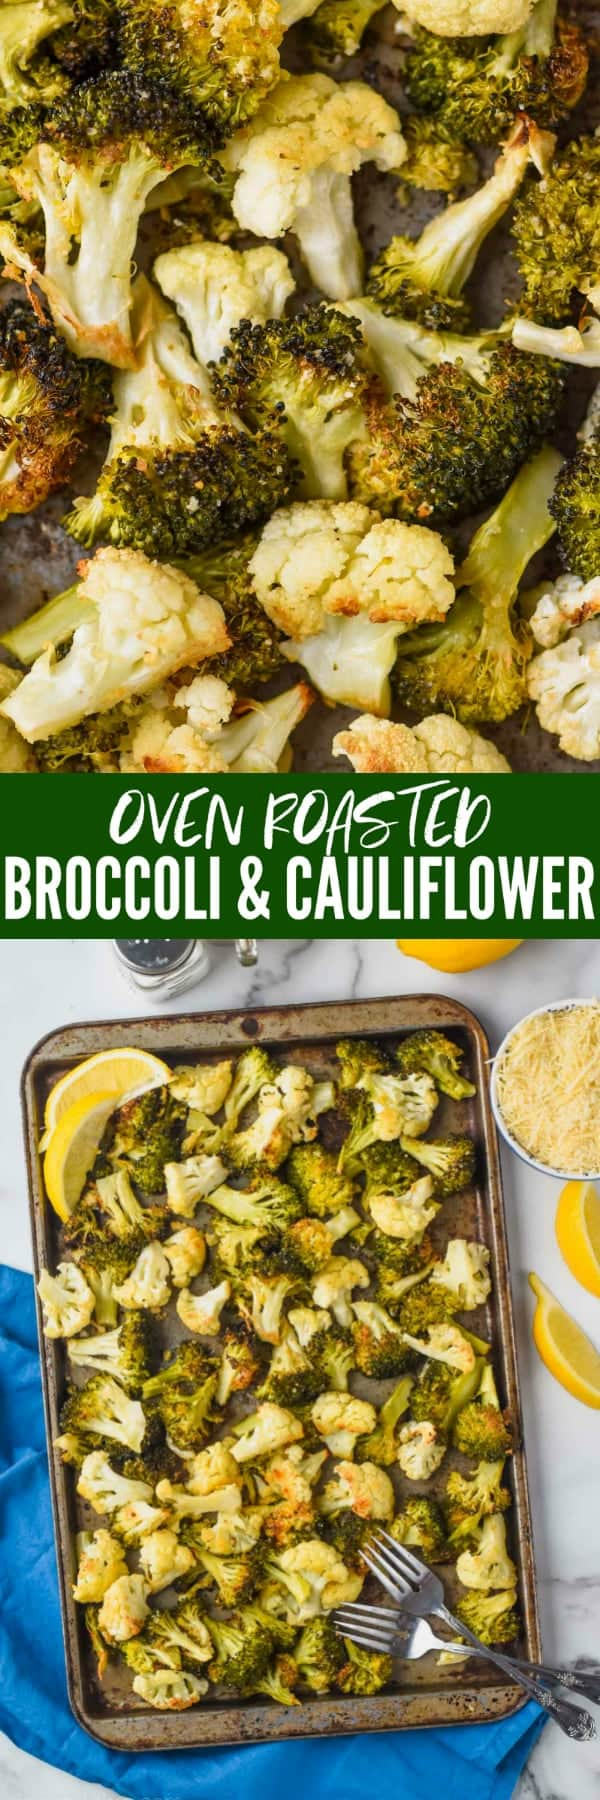 collage of photos of roasted broccoli and cauliflower